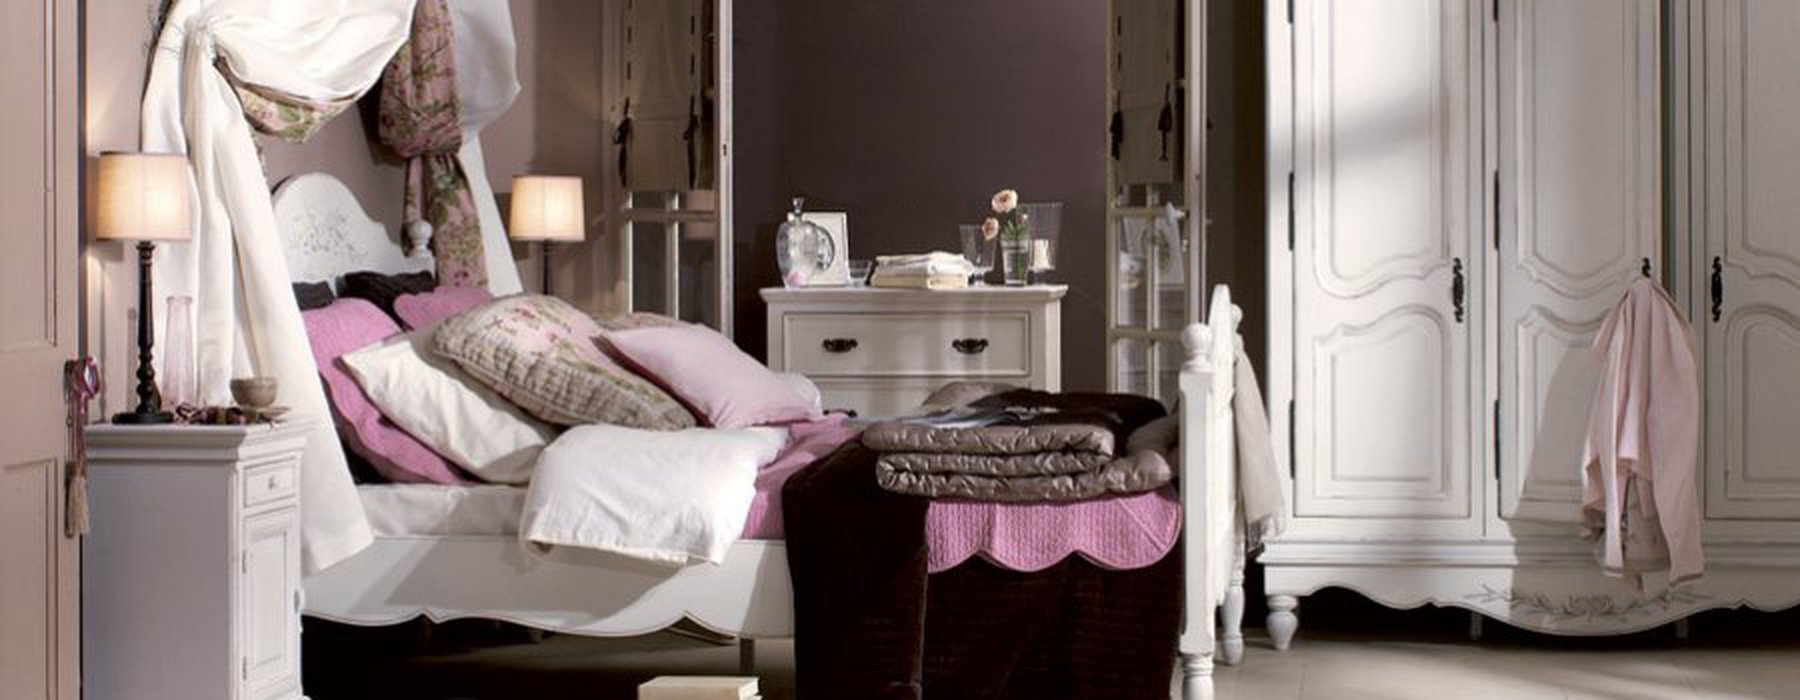 Chambre Style Shabby Chic shabby chic and buttermilk paint: a perfect match? - ardec